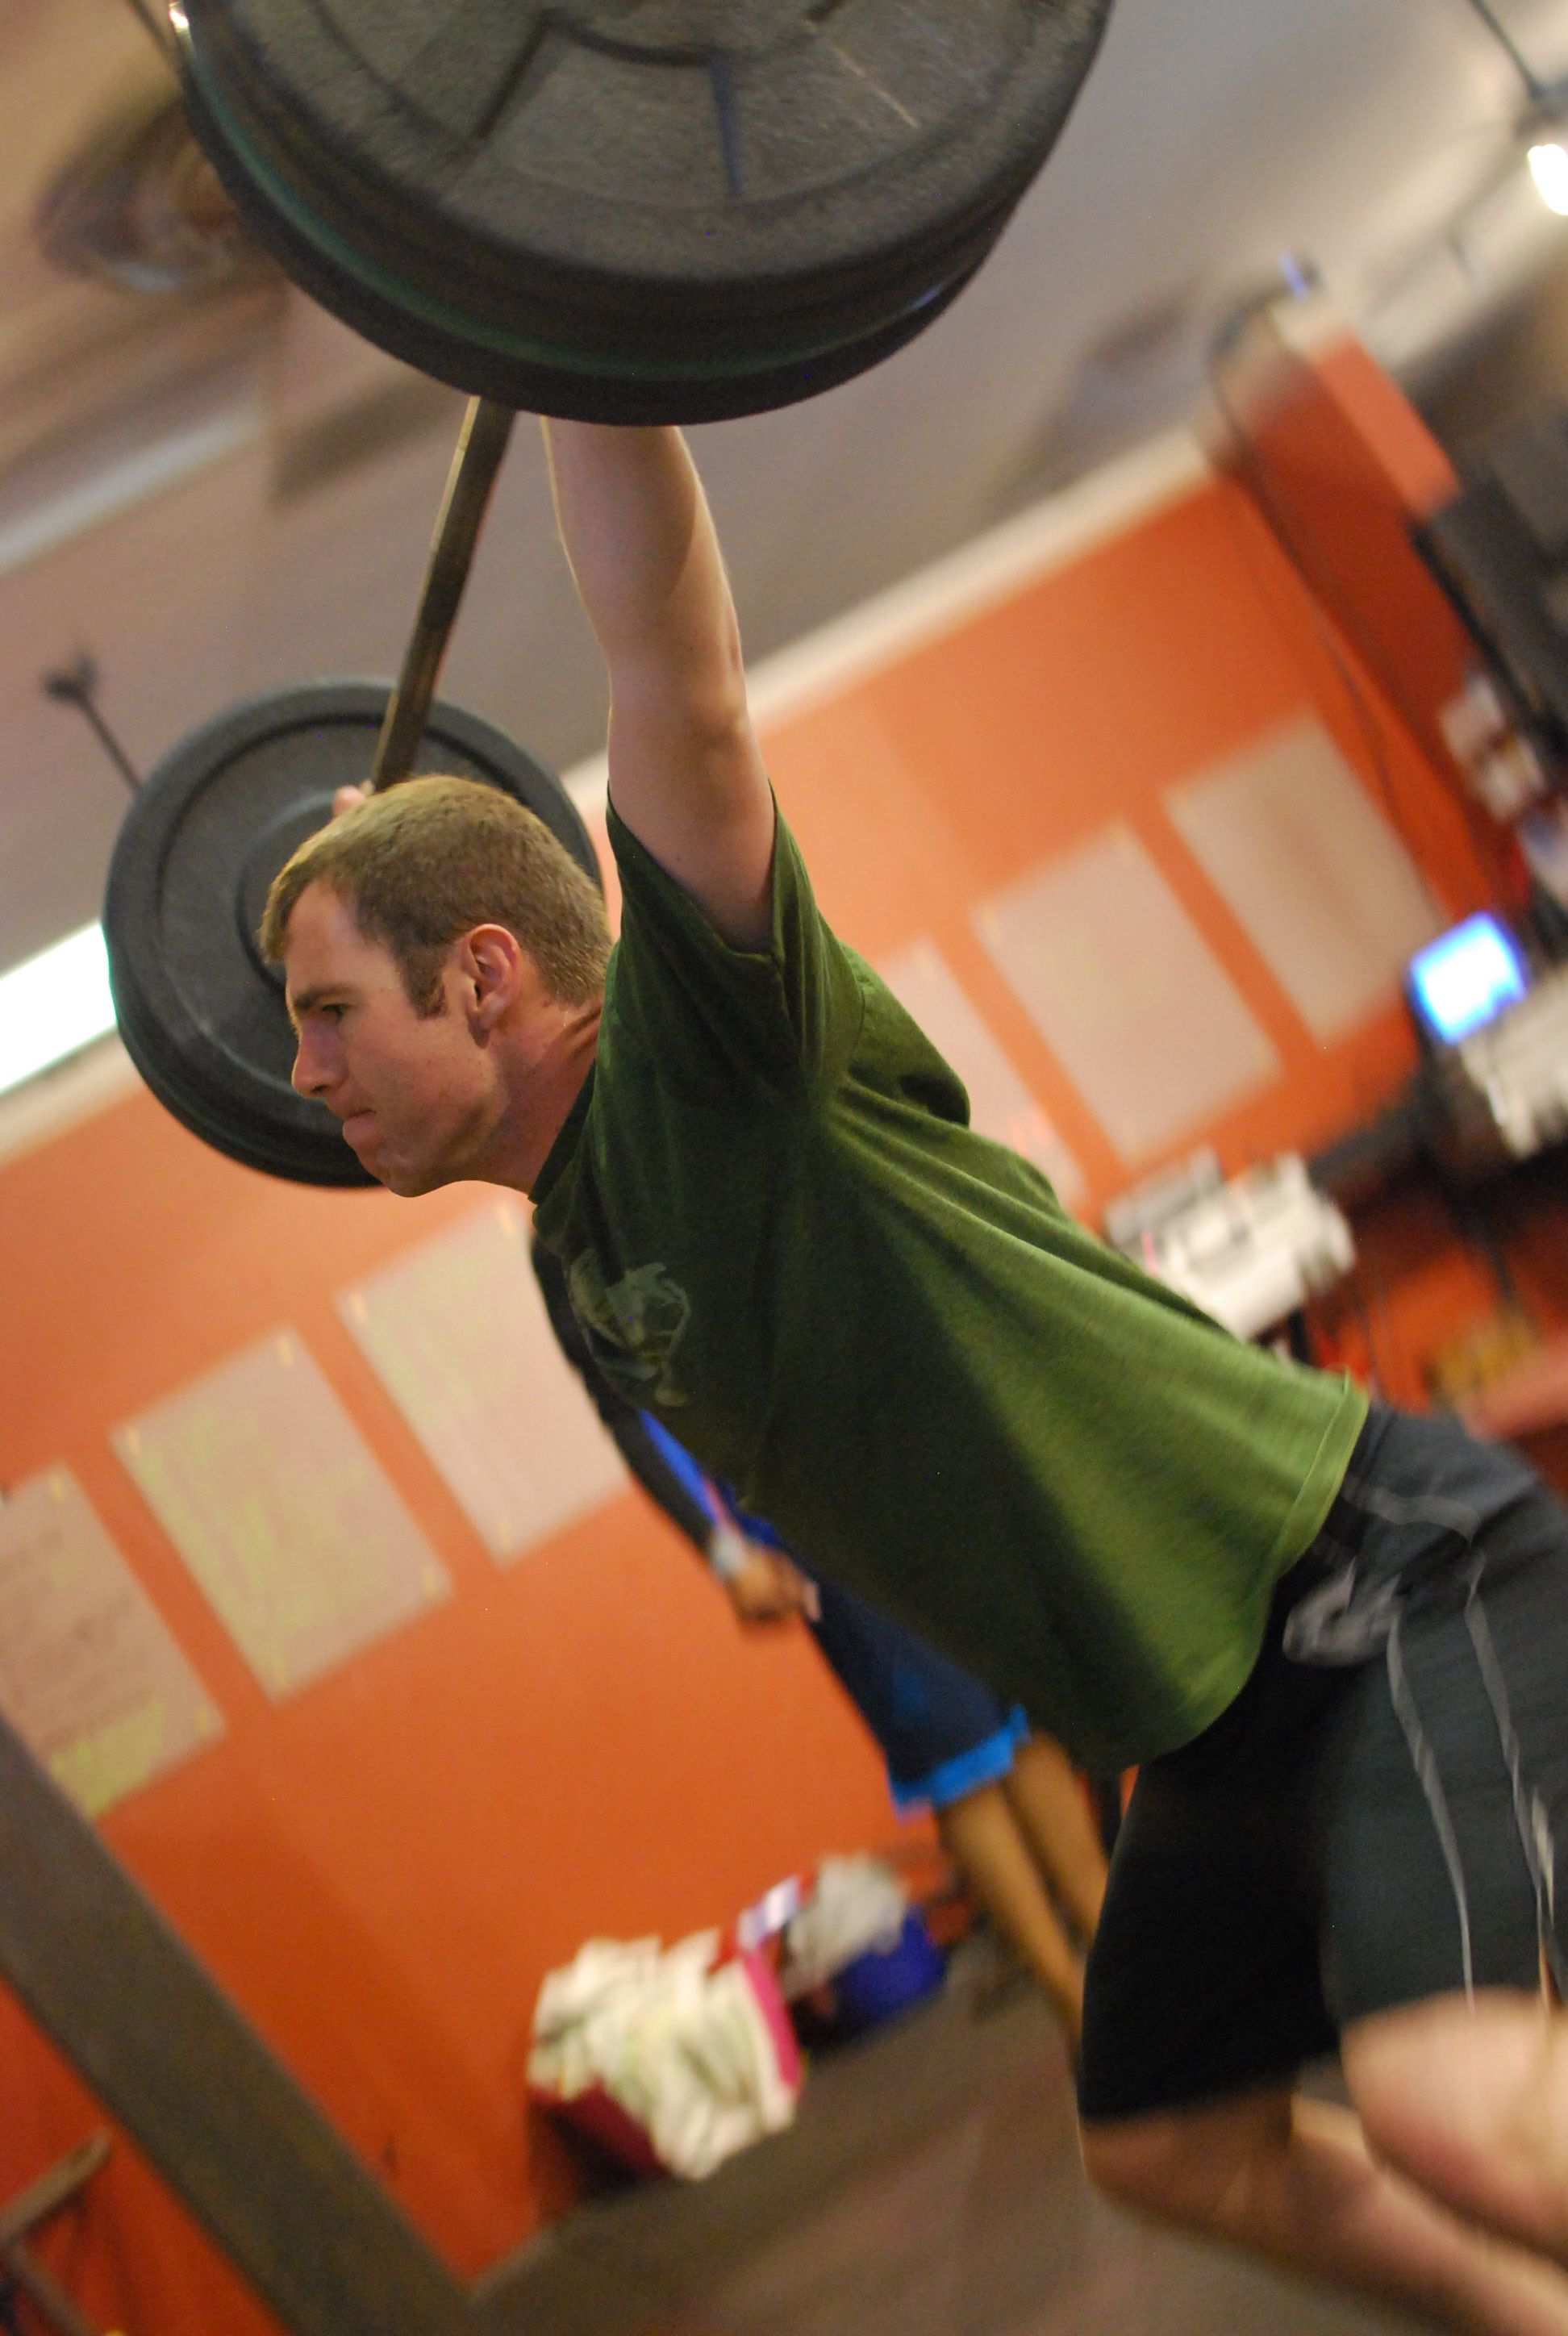 Gavin Douglas hits good positions on the power snatch! He has been quite consistent in the evening class as he lives rather close to the box. We are so proud to be in a convenient location for Silicon Valley's finest fellows!